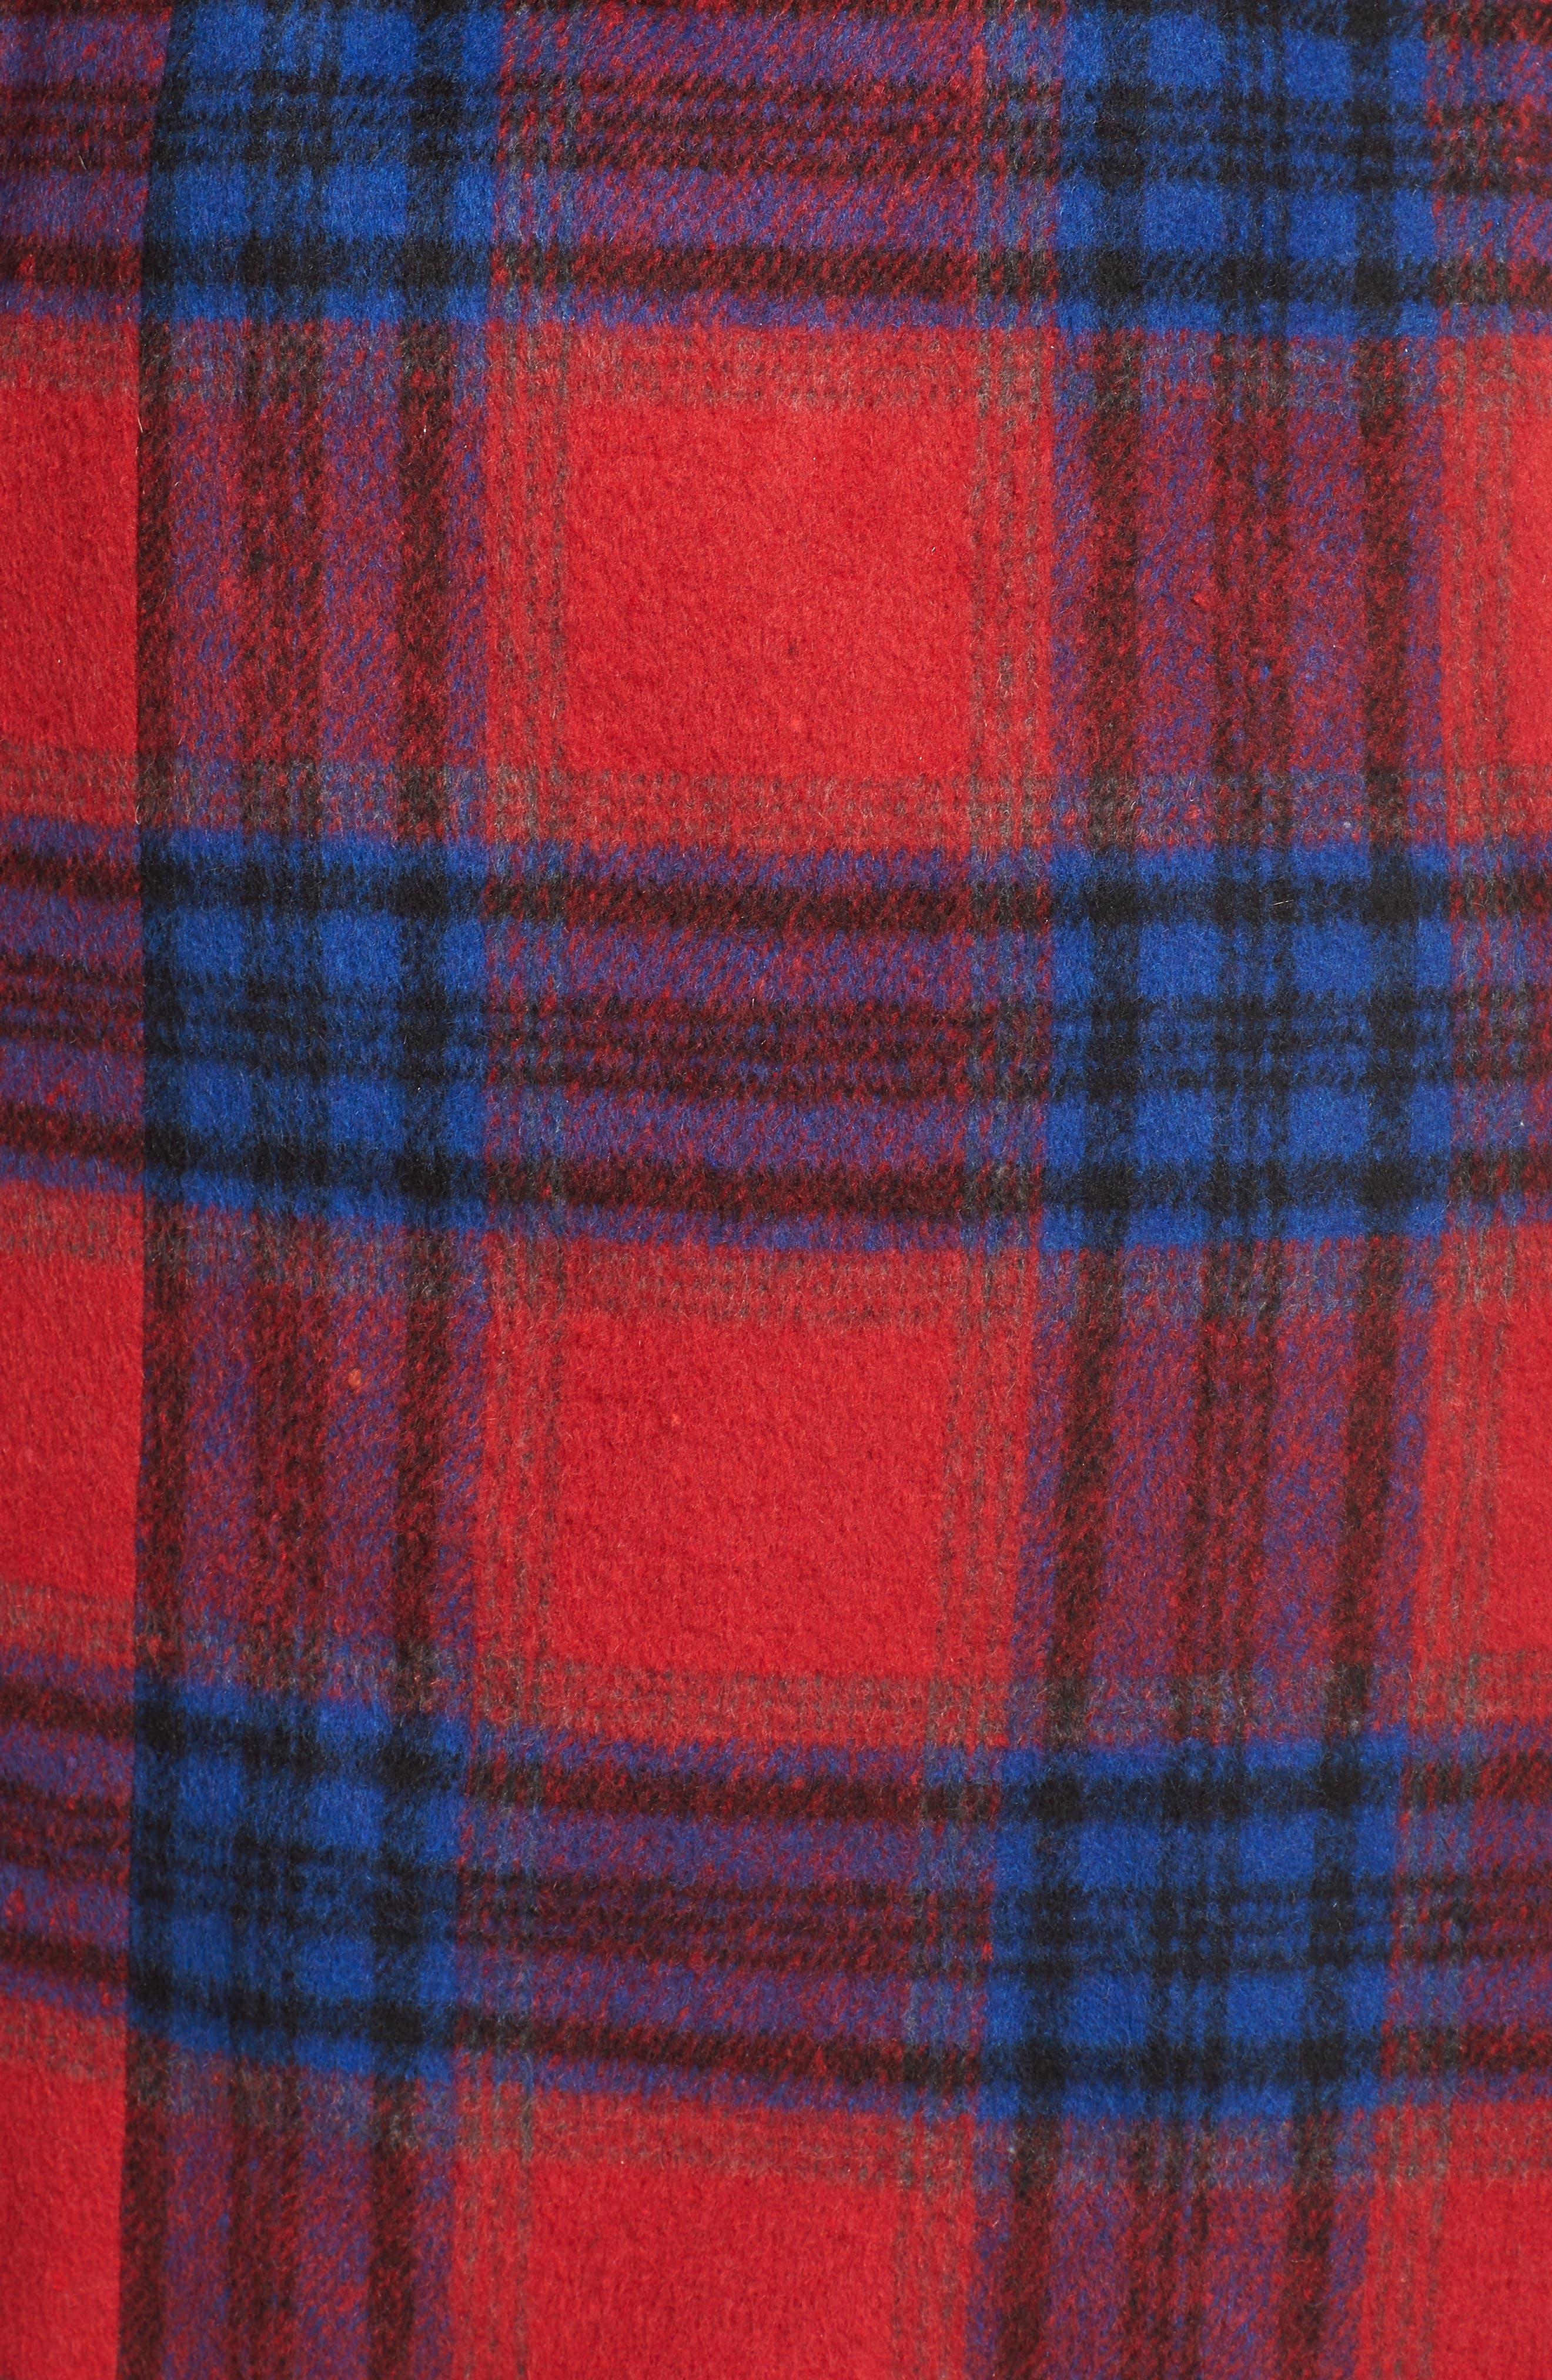 Double Breasted Plaid Jacket,                             Alternate thumbnail 7, color,                             RED CHINOISE RITA PLAID